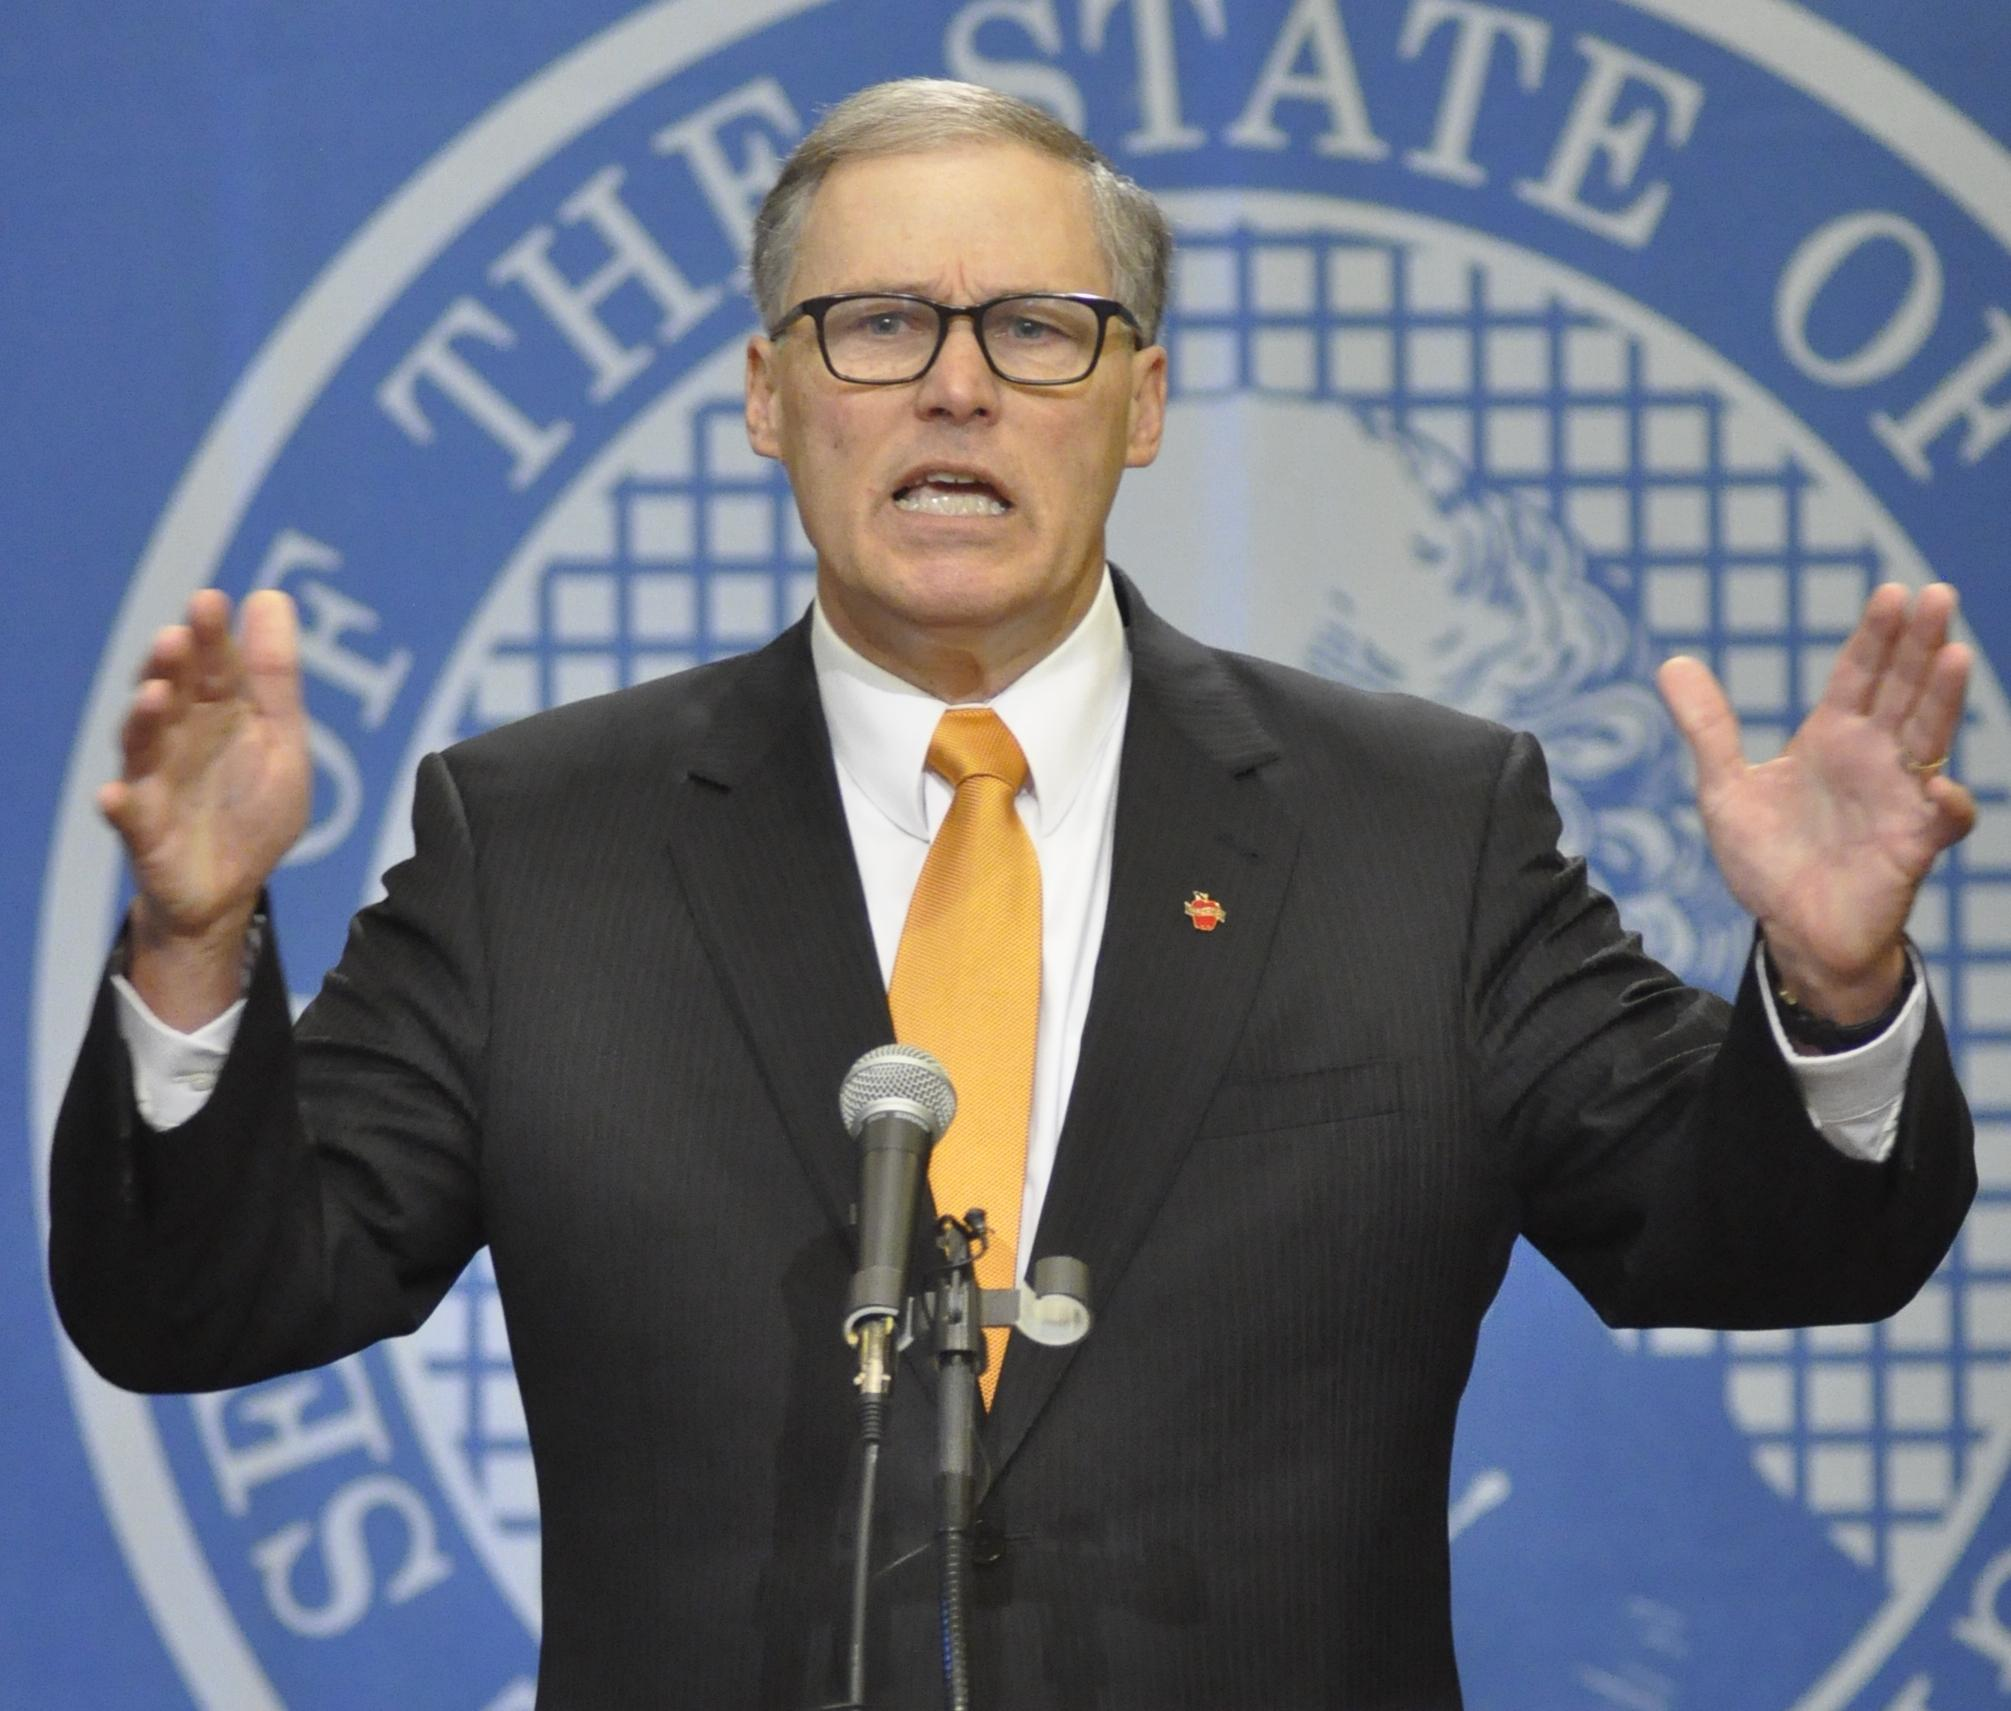 Washington Gov Jay Inslee blasts Senate GOP over political